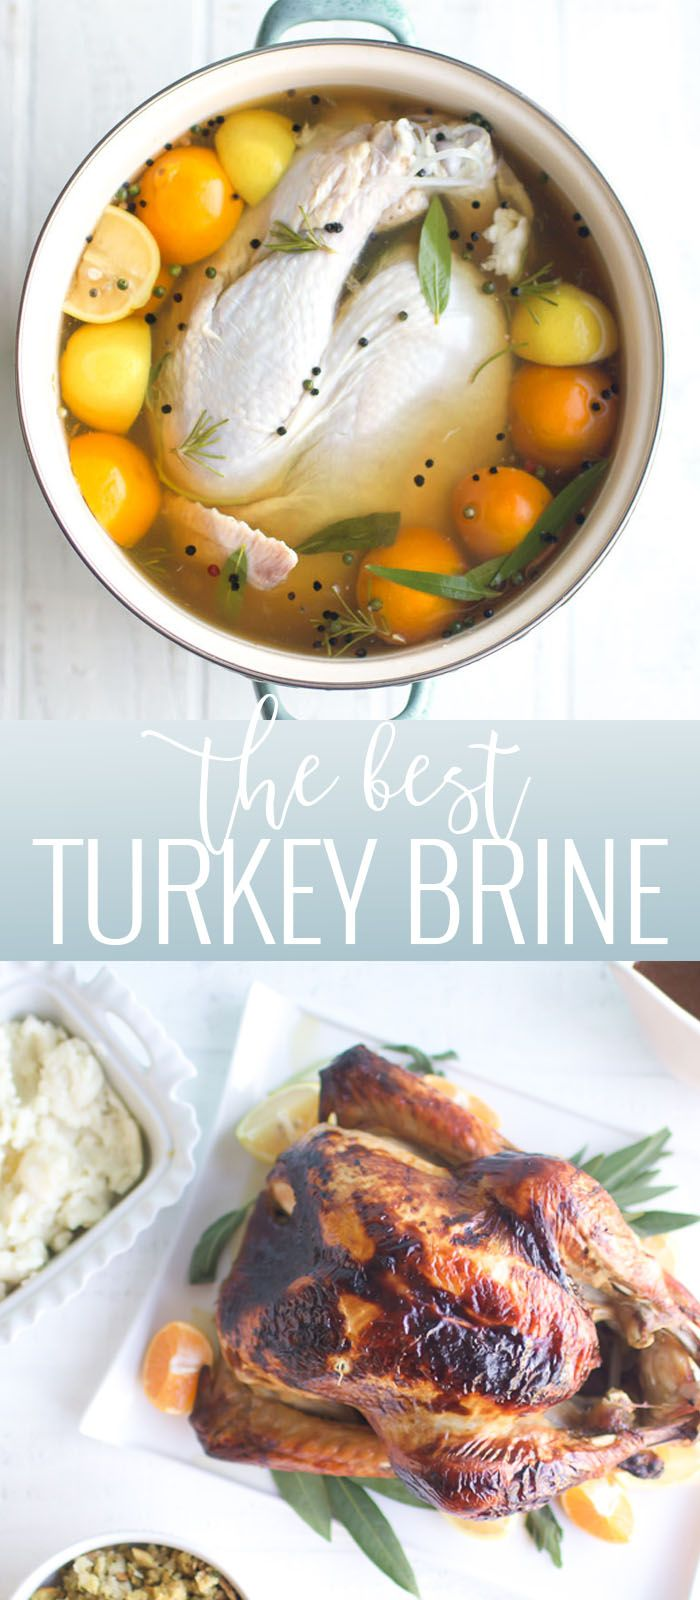 Brined Turkey with Garlic Herb Butter | Oh So Delicioso